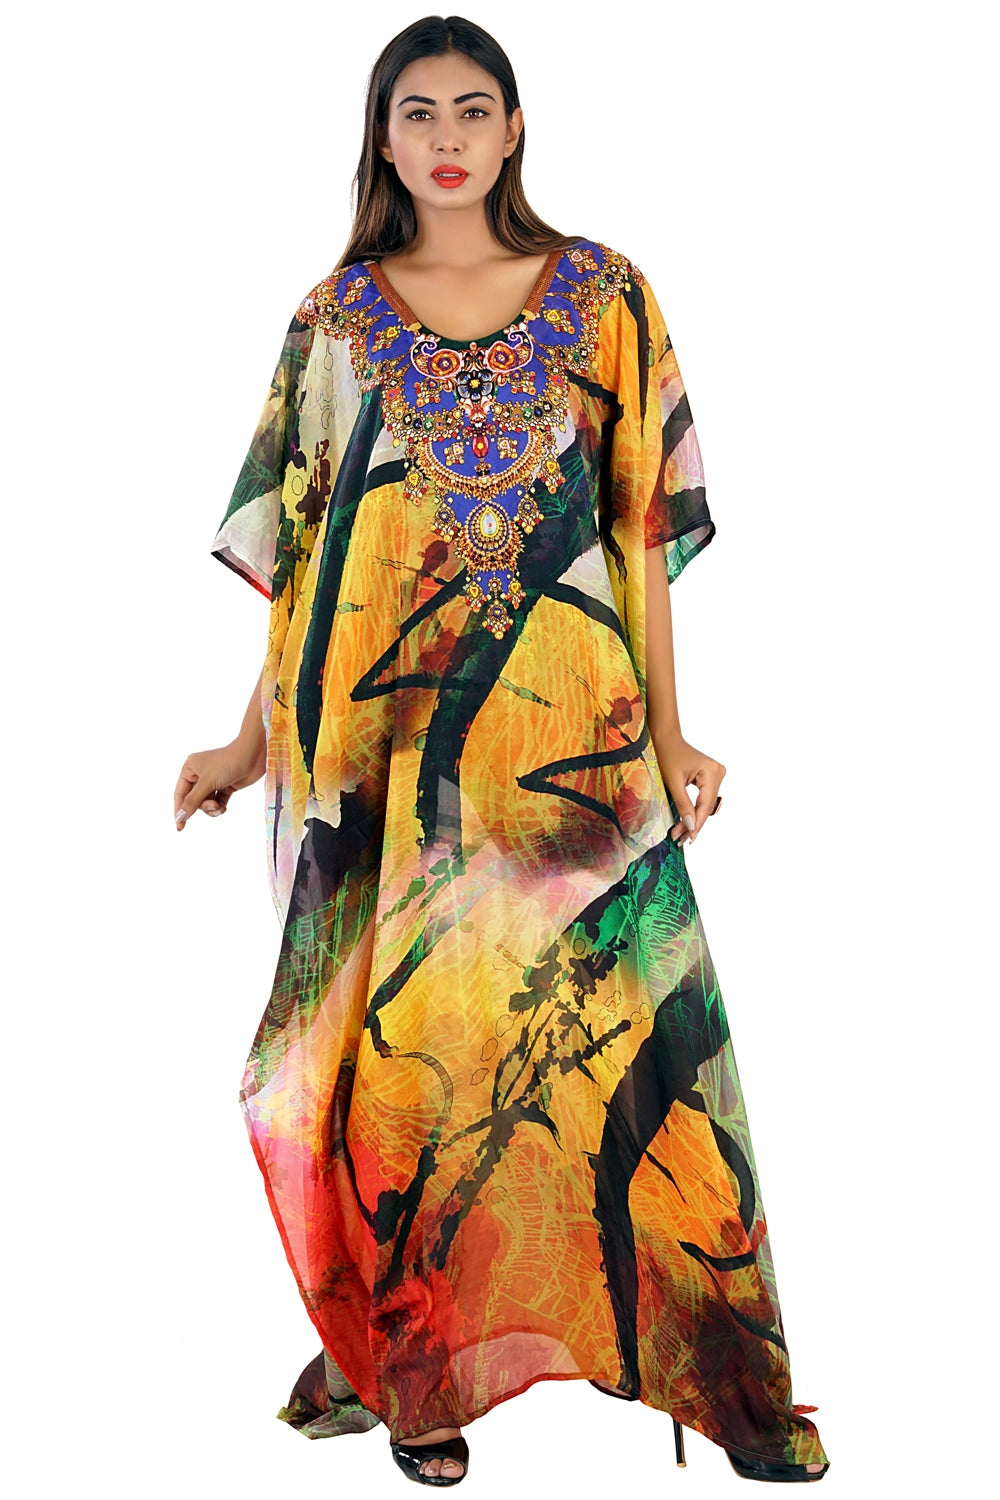 Silk kaftan online one piece dress on sale/jeweled/hand made/formal/ caftan beach cover up hot look luxuries Resort yacht party kaftan 317 - Silk kaftan